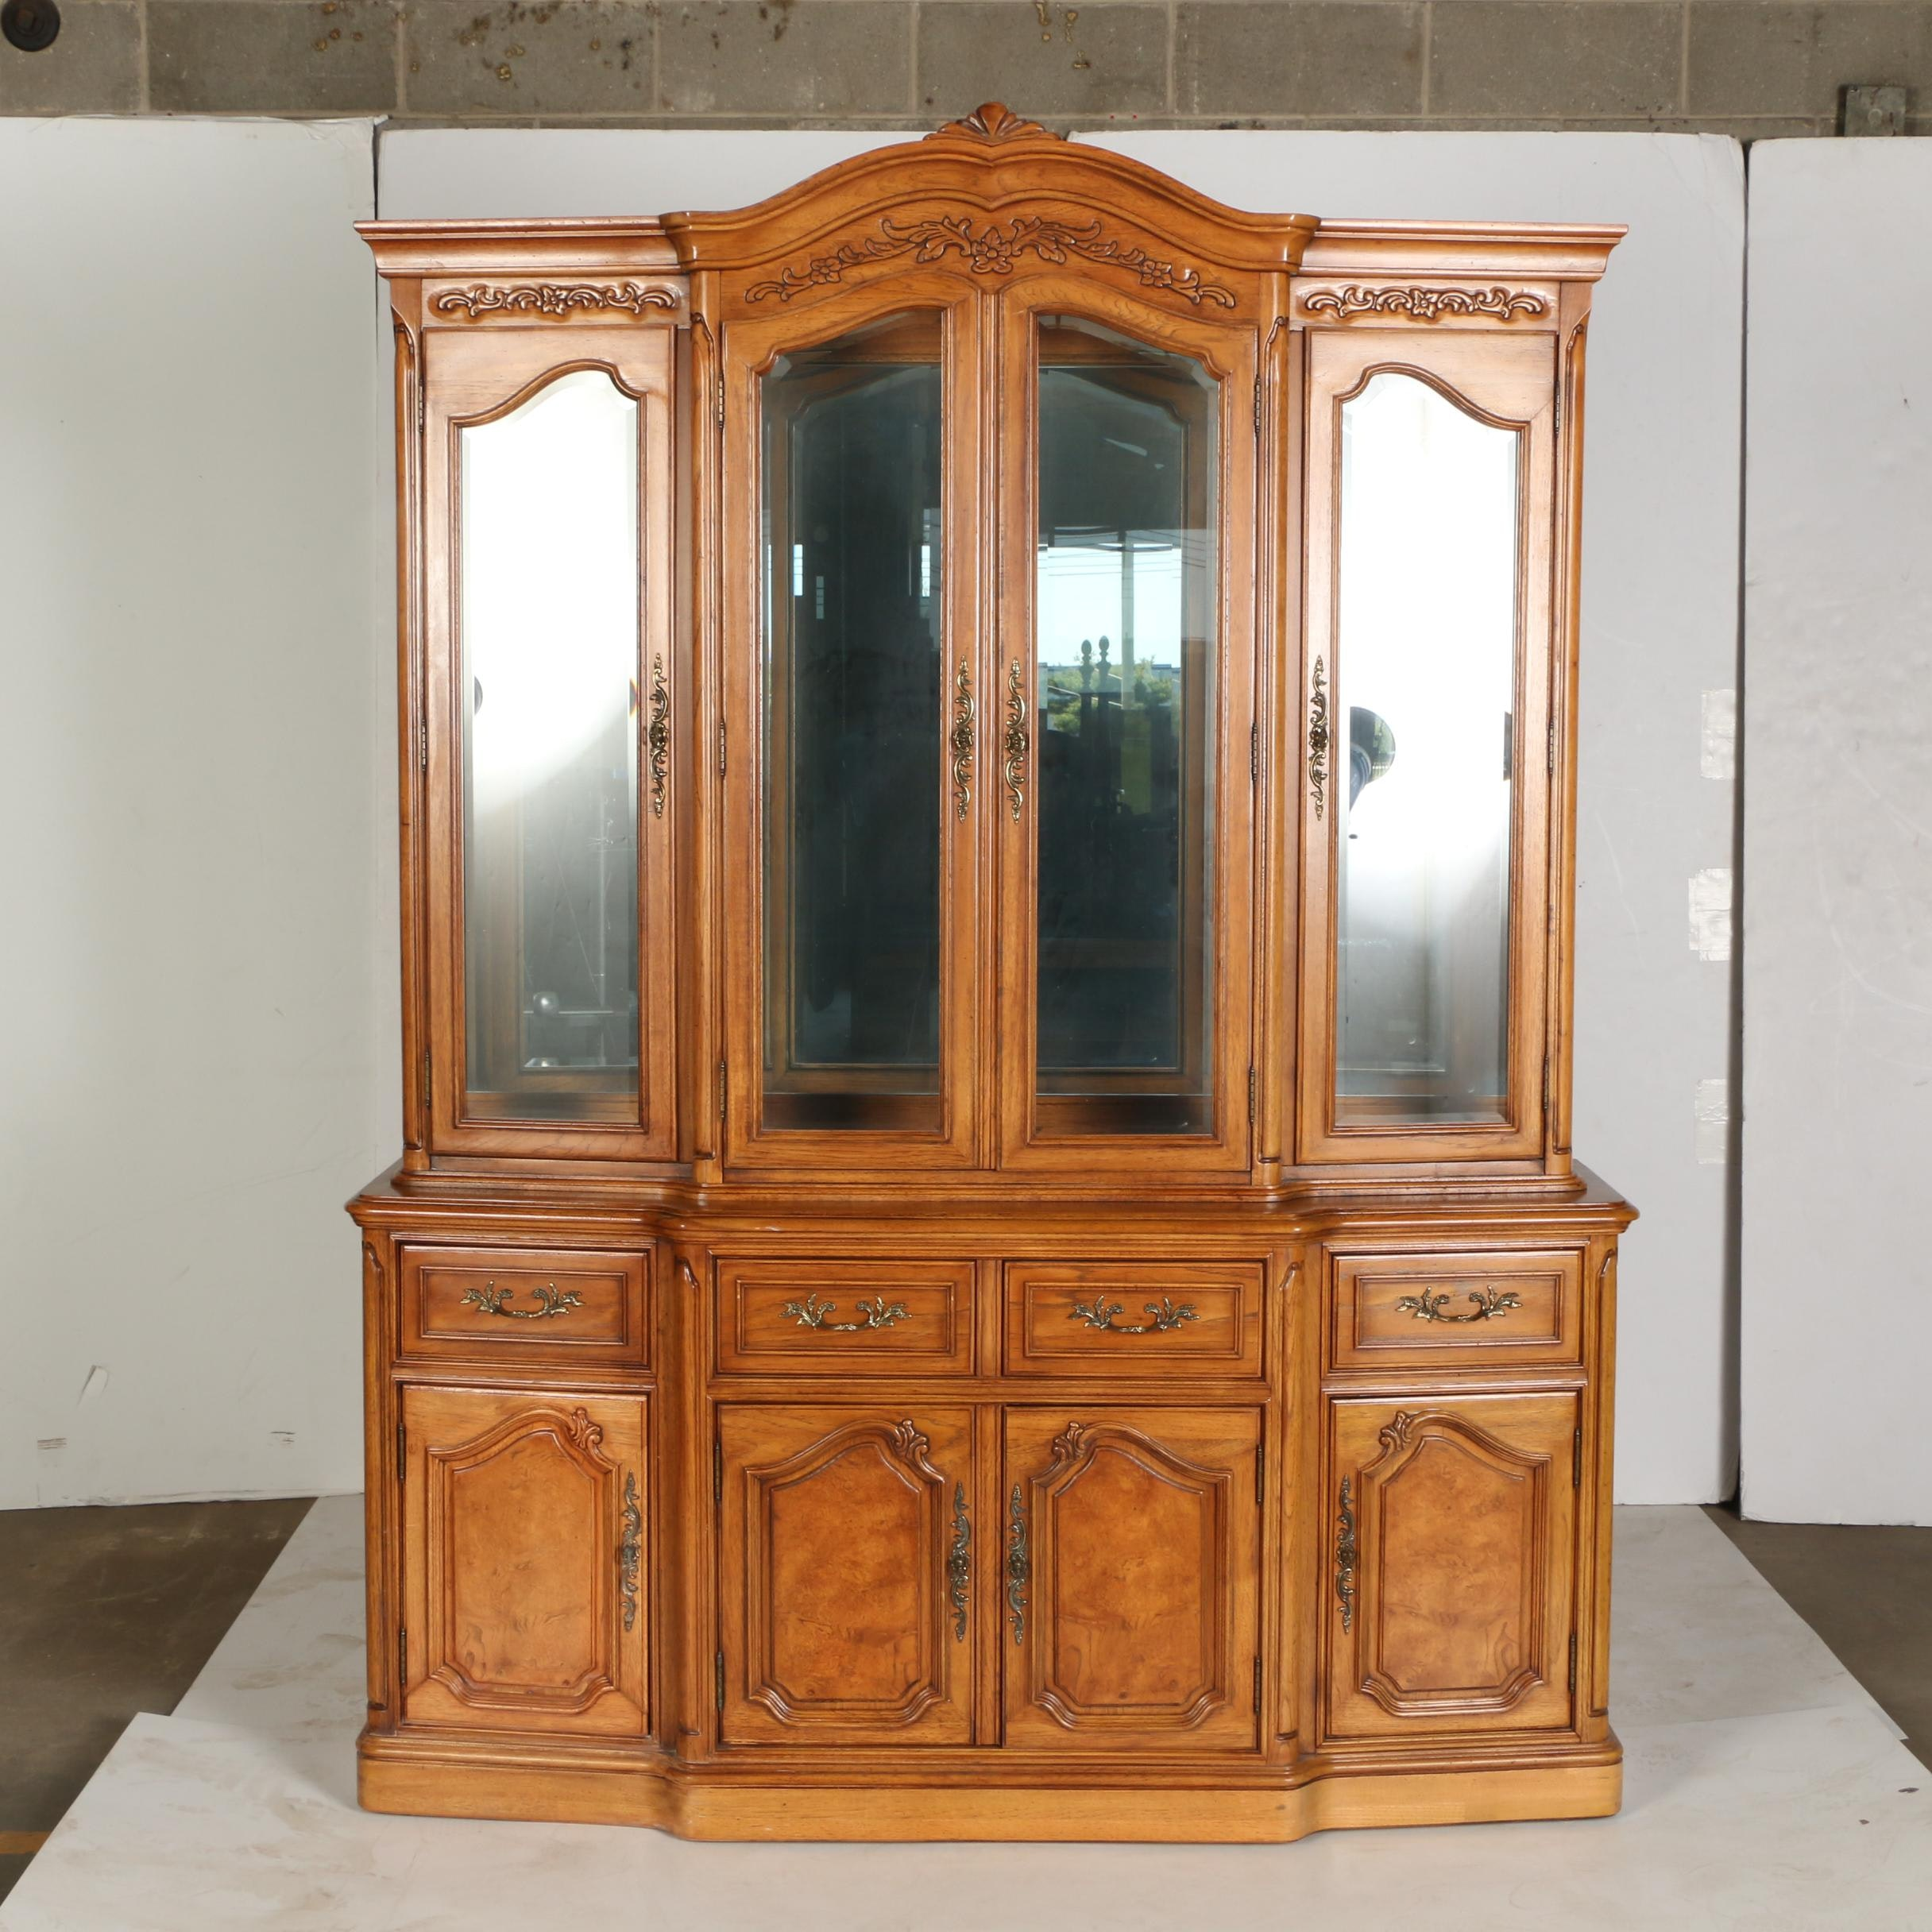 Vintage French Provincial Style Breakfront China Cabinet by Thomasville